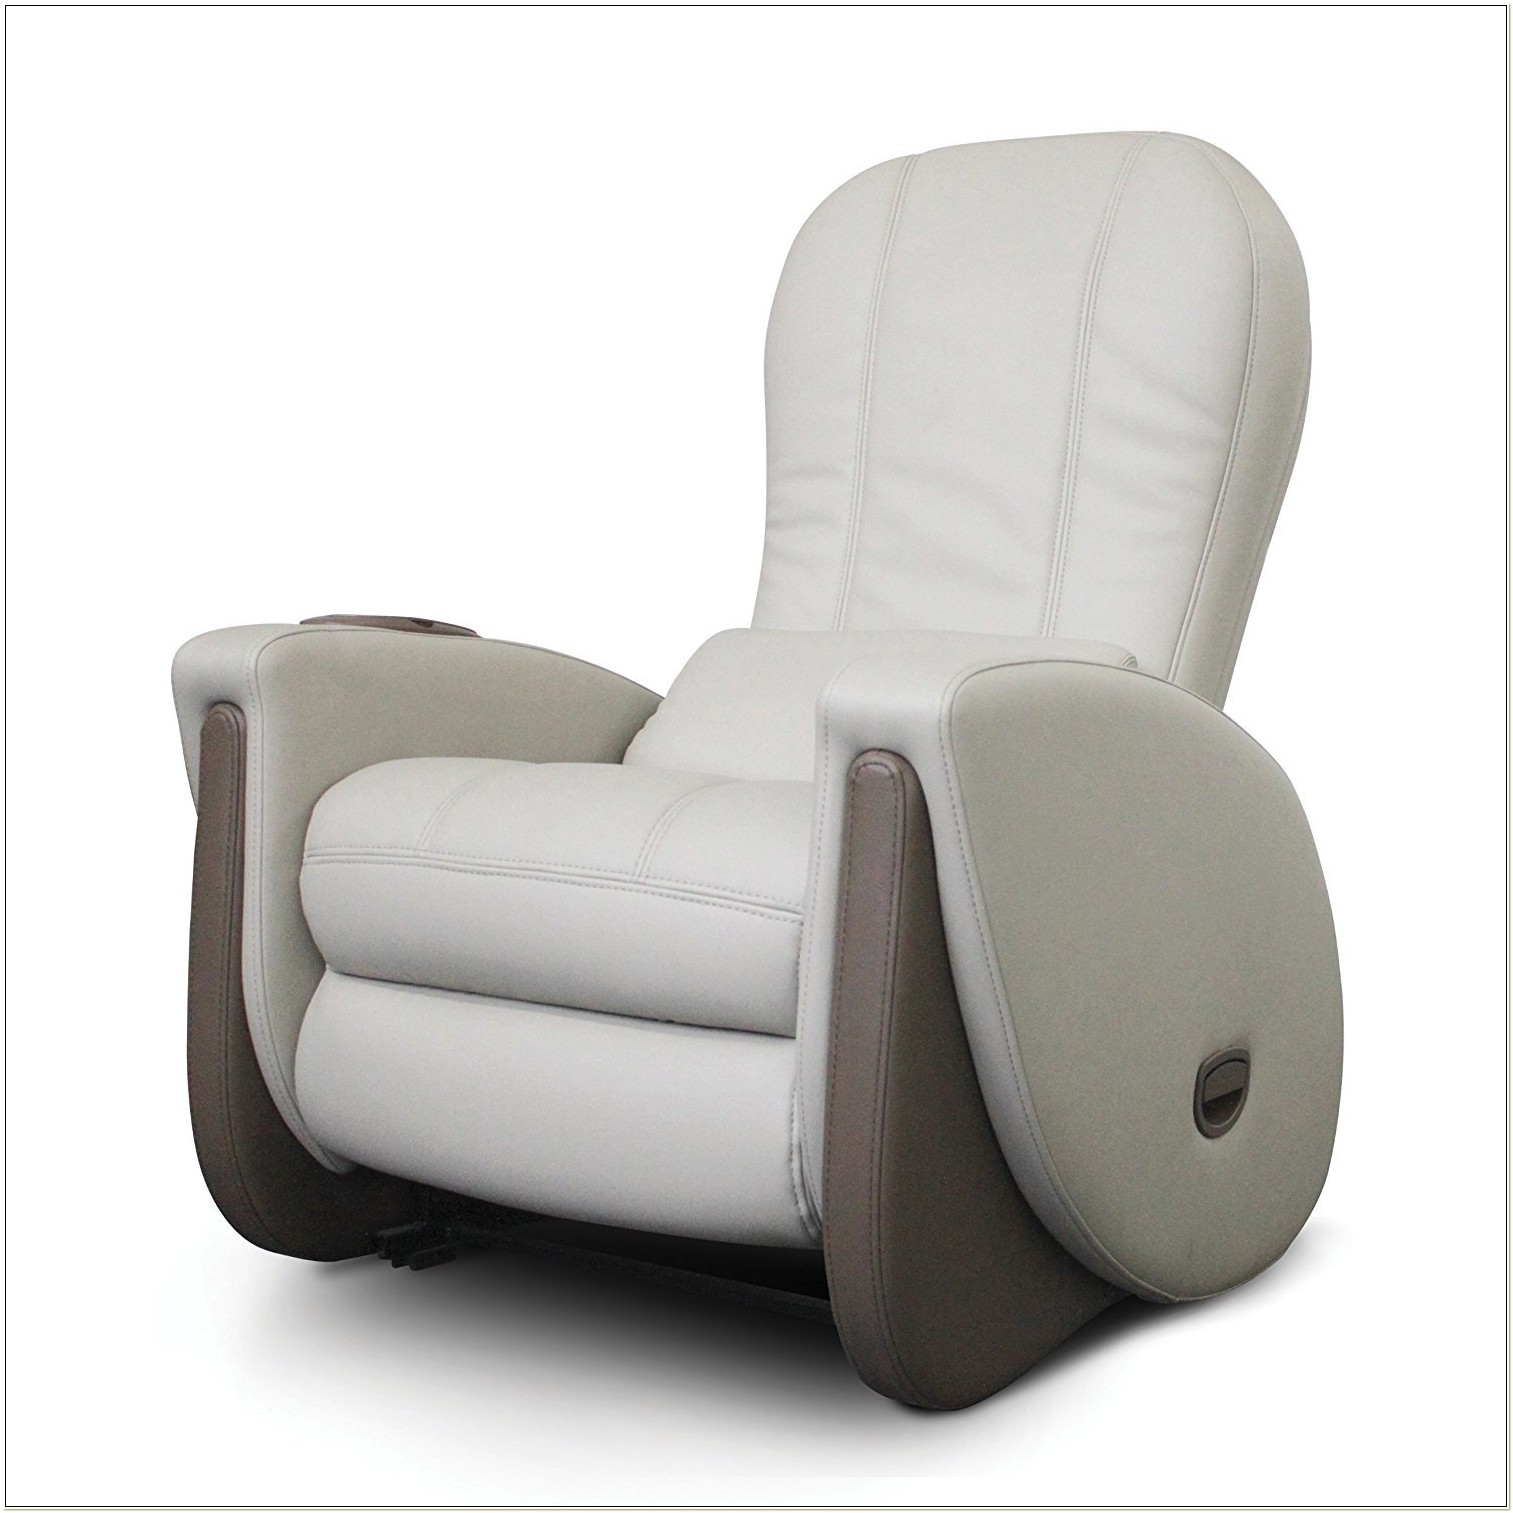 Homedics Elounger Massage Chair